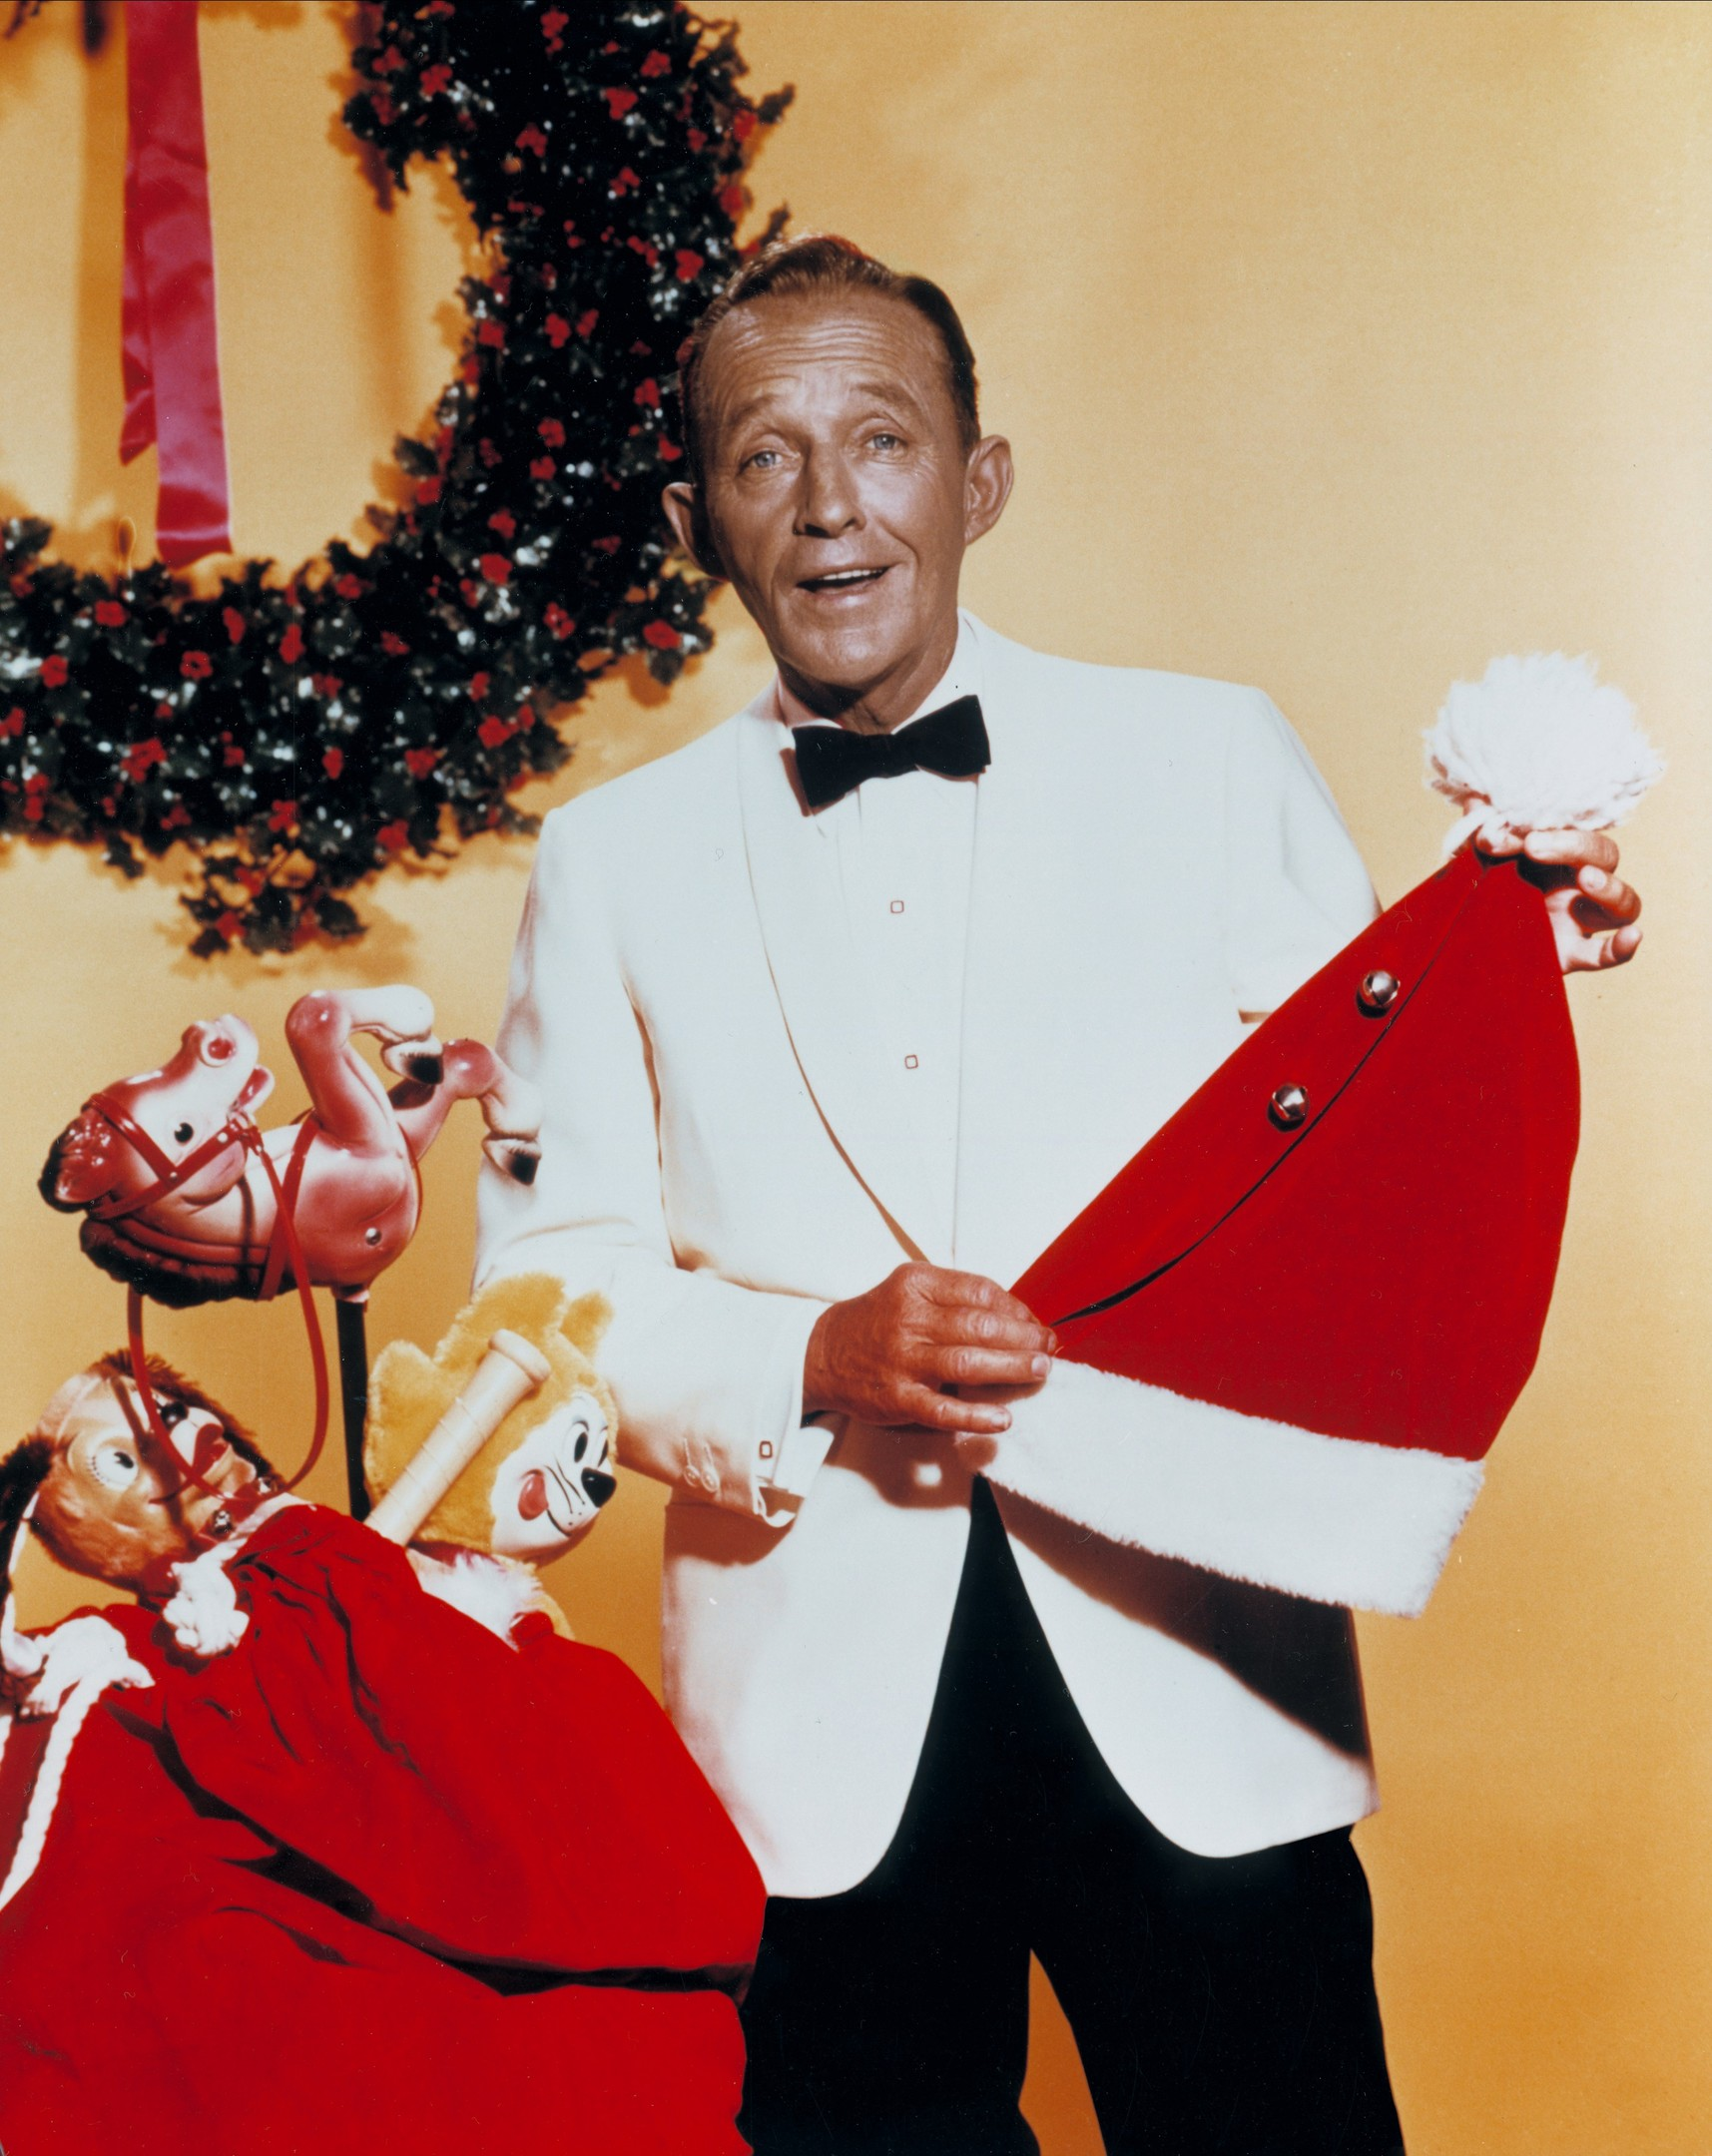 Bing Crosby Christmas.Story Behind The Christmas Song Bing Crosby S White